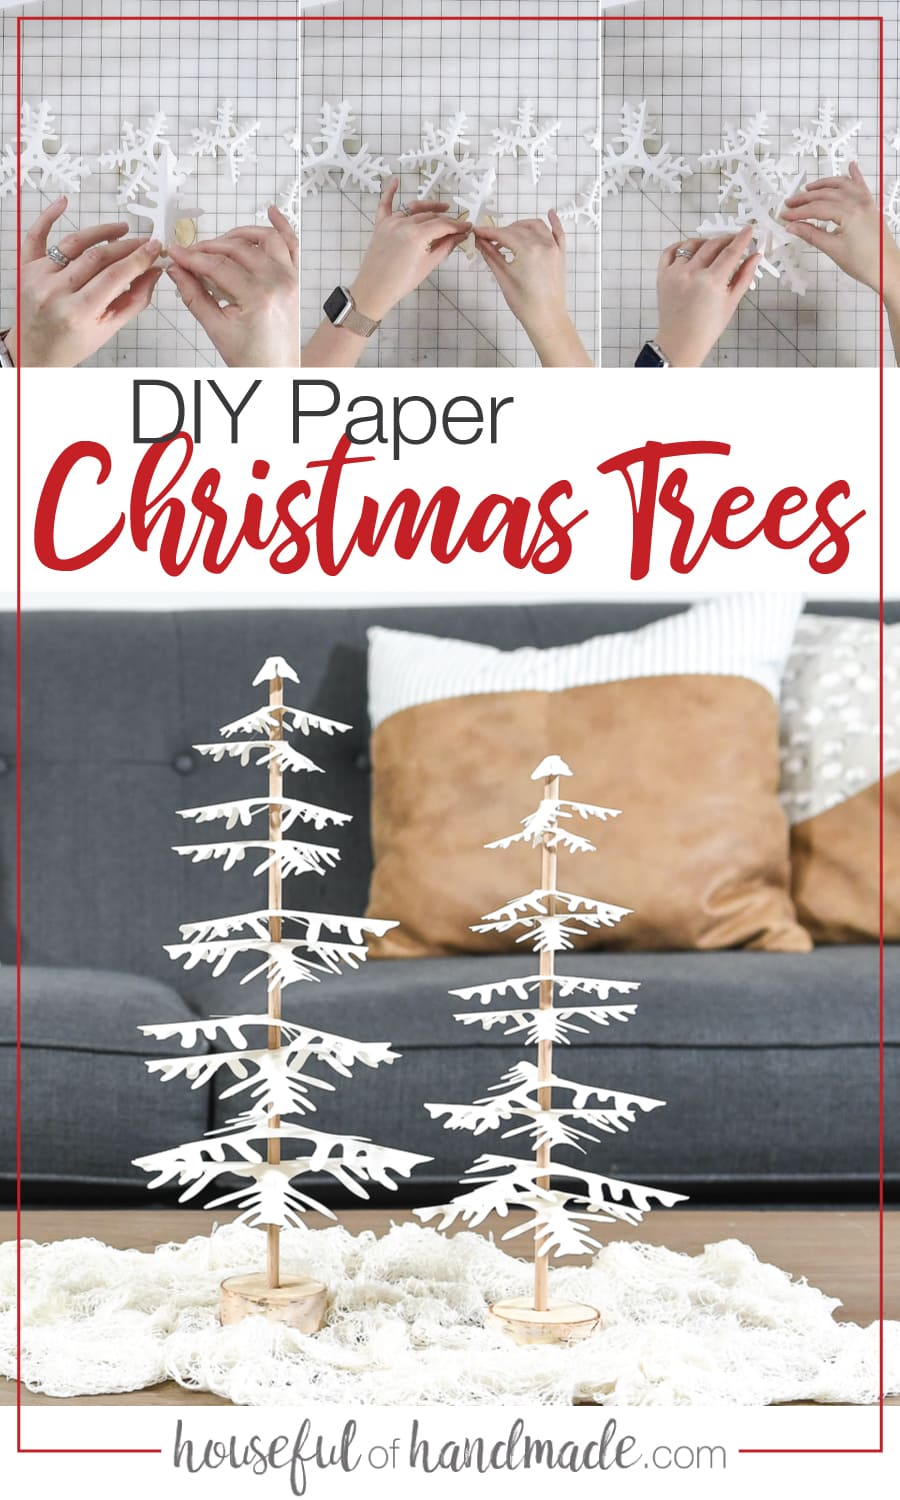 DIY paper Christmas trees on a table and shots of assembling them.